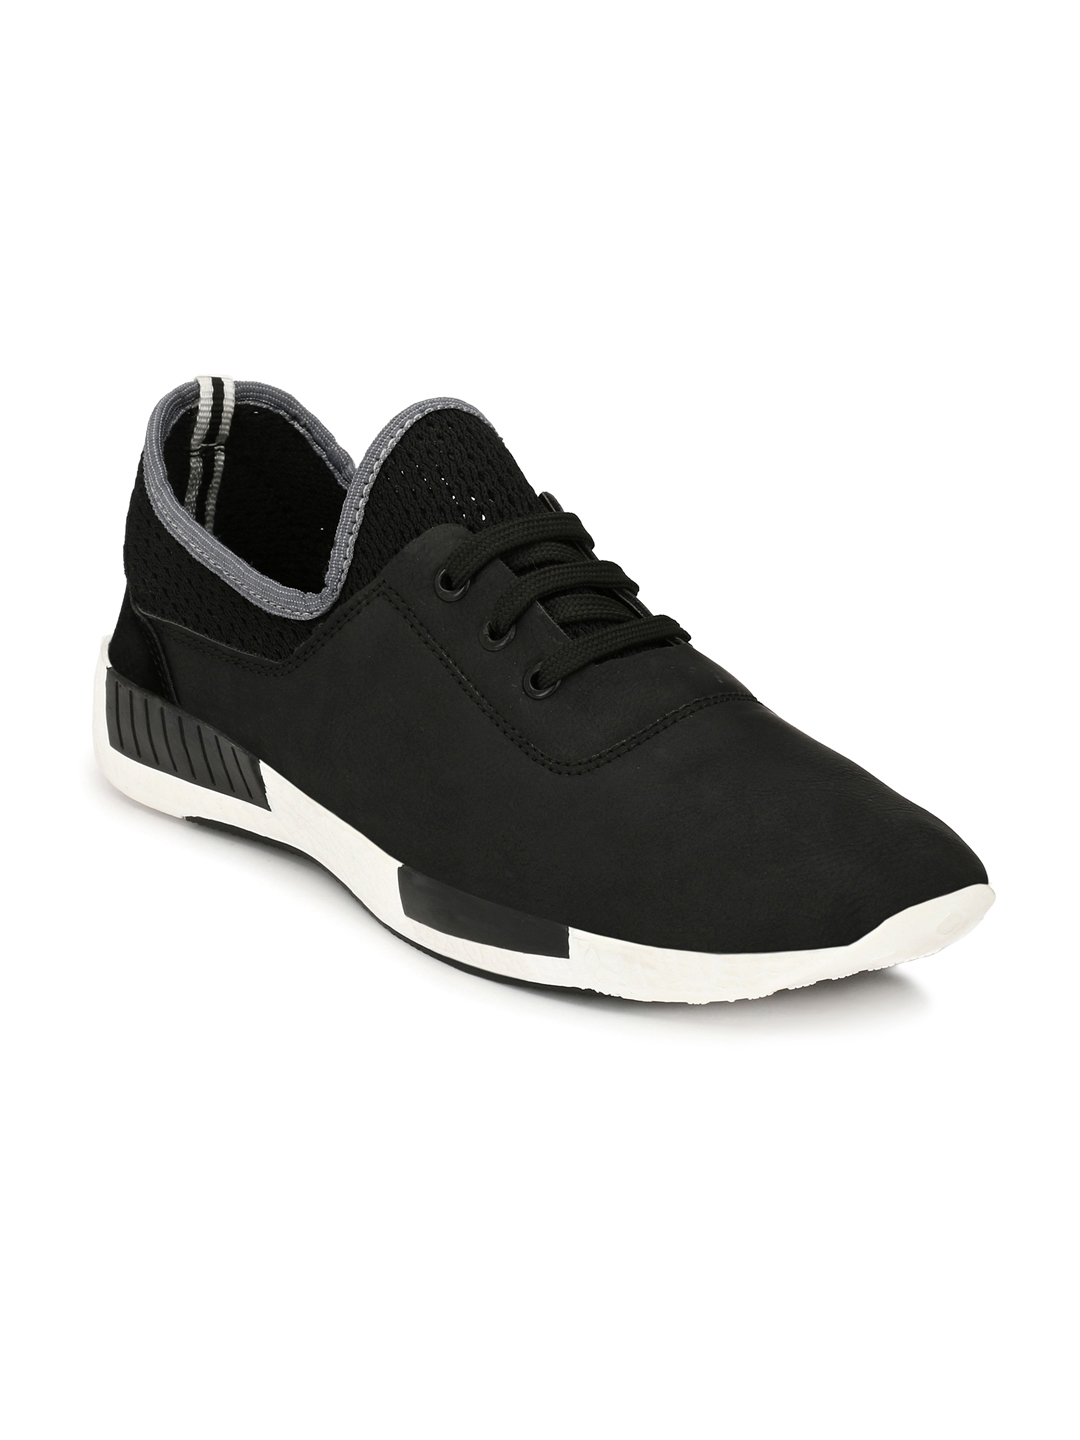 mens casual shoes black style guru fashion glitz